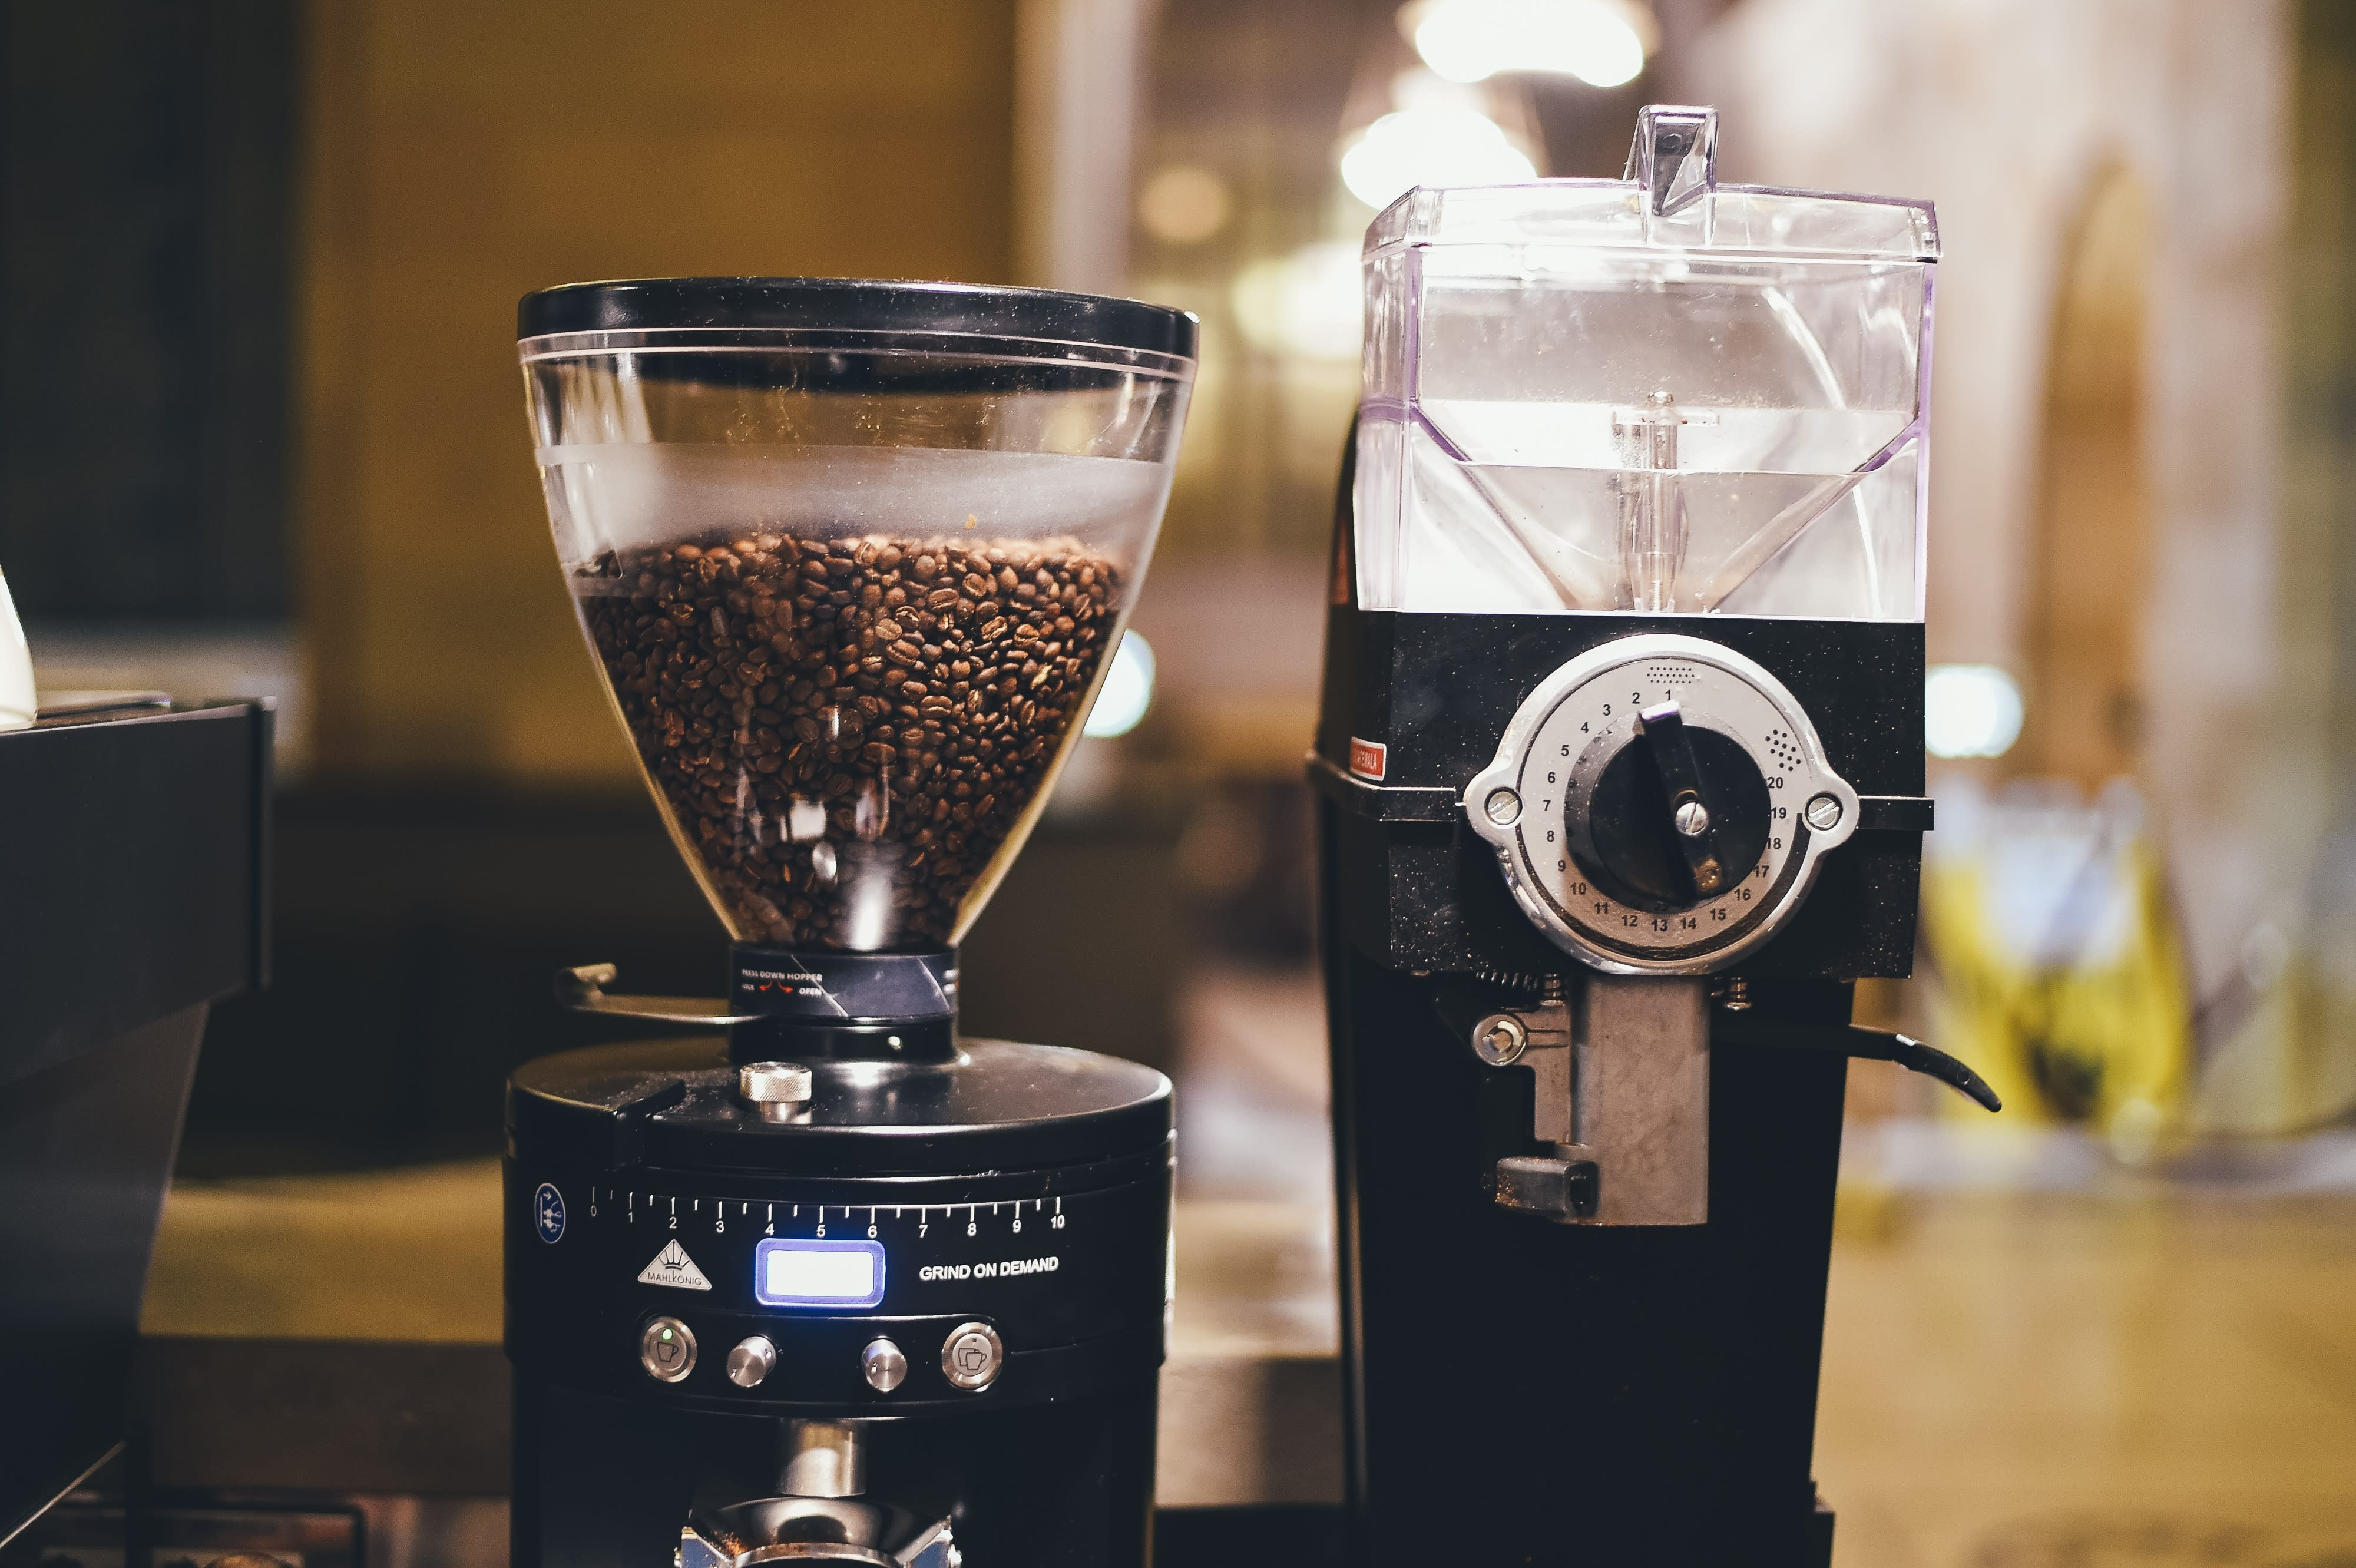 Hands-On Barista Course Sydney - 3 Hour Coffee Making Class